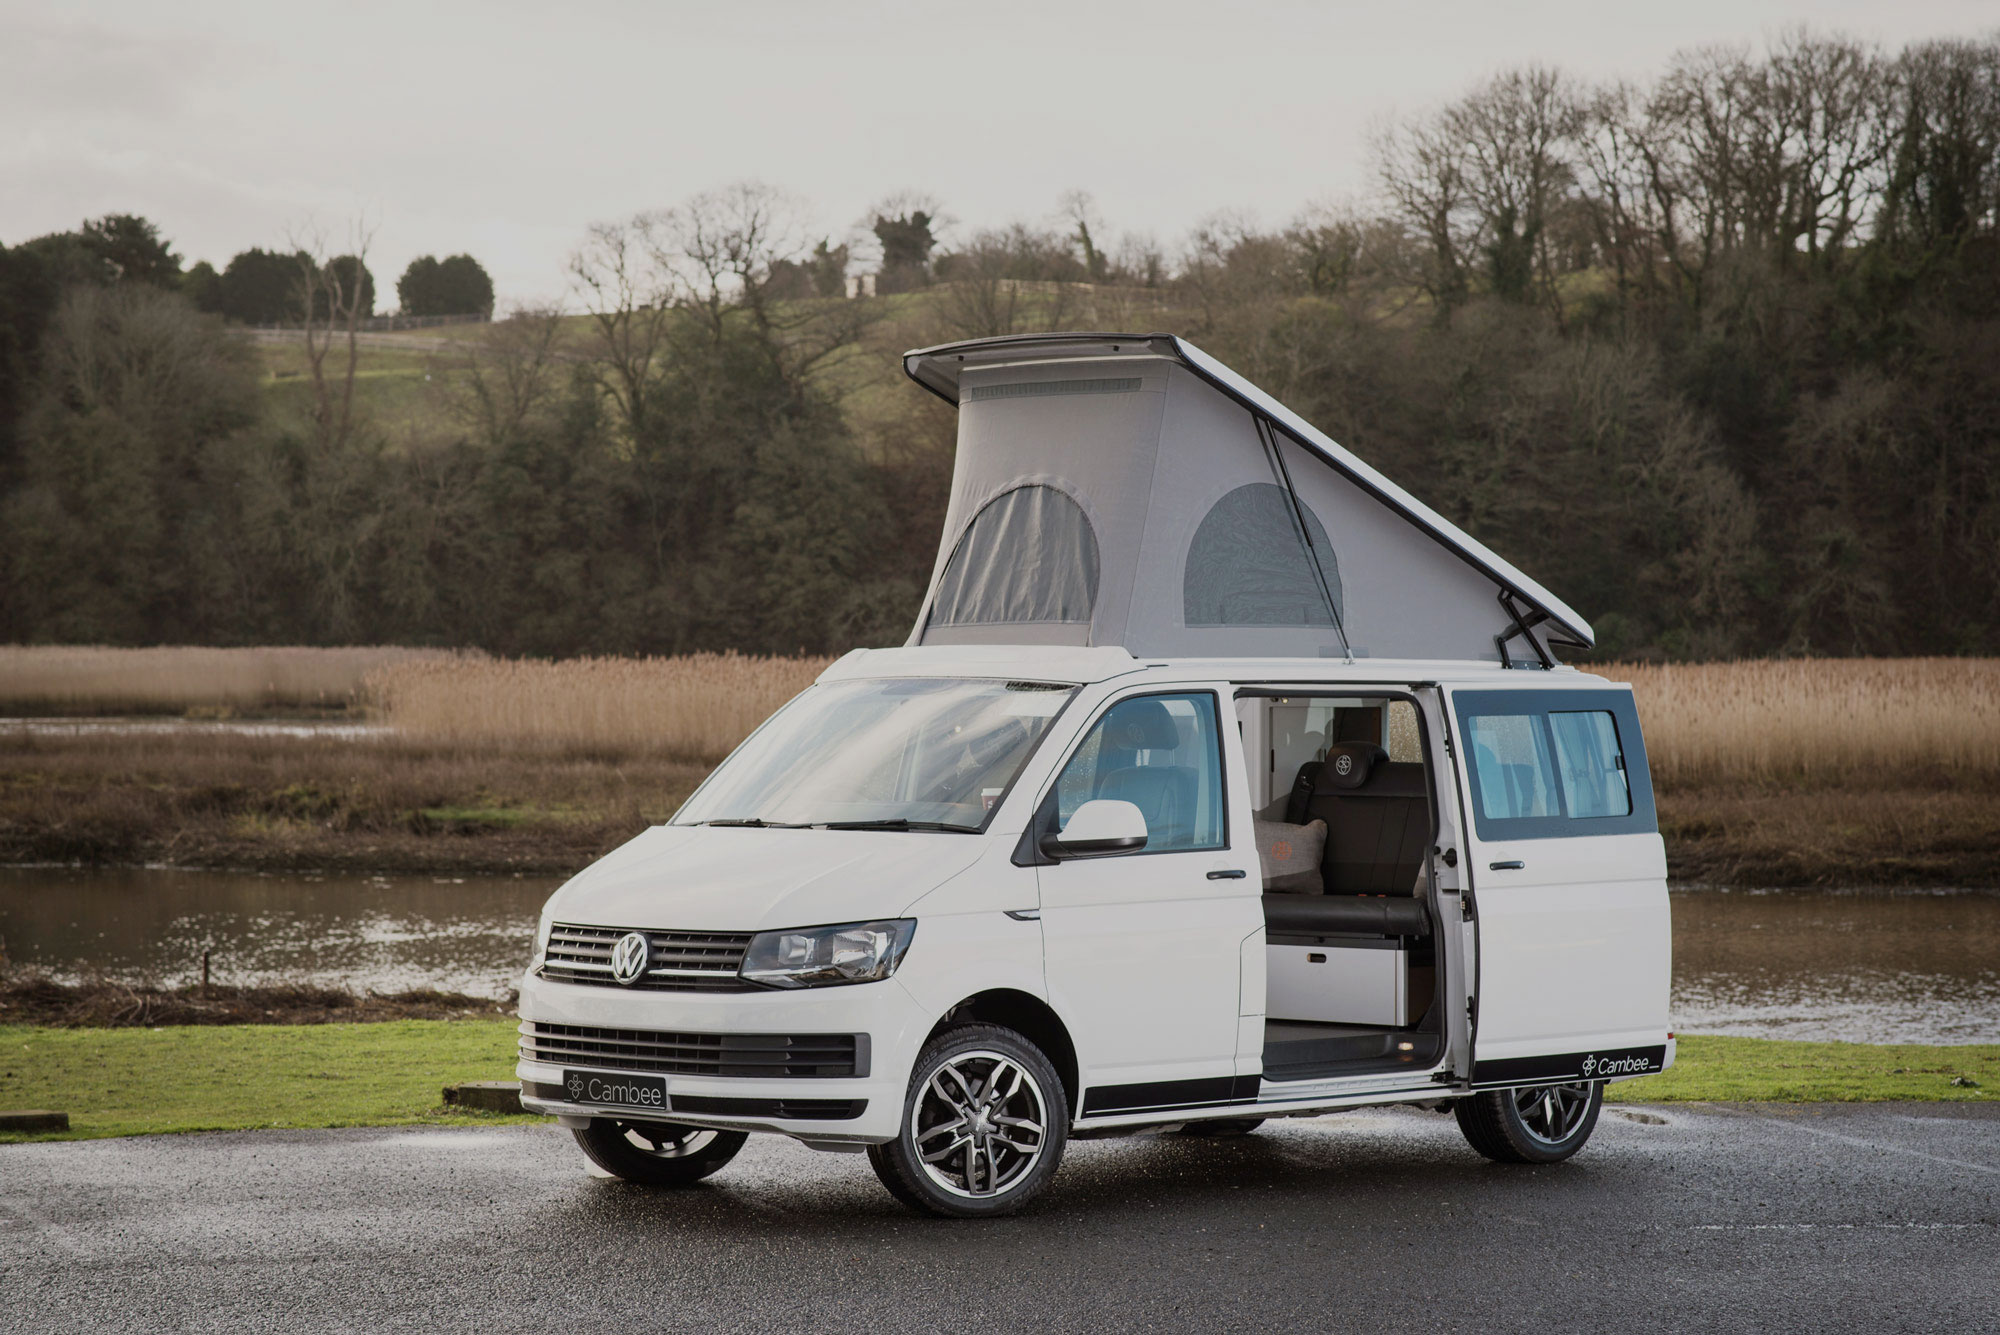 T6 VW white slick campervan with alloy wheels parked in nature with elevated roof and side door open